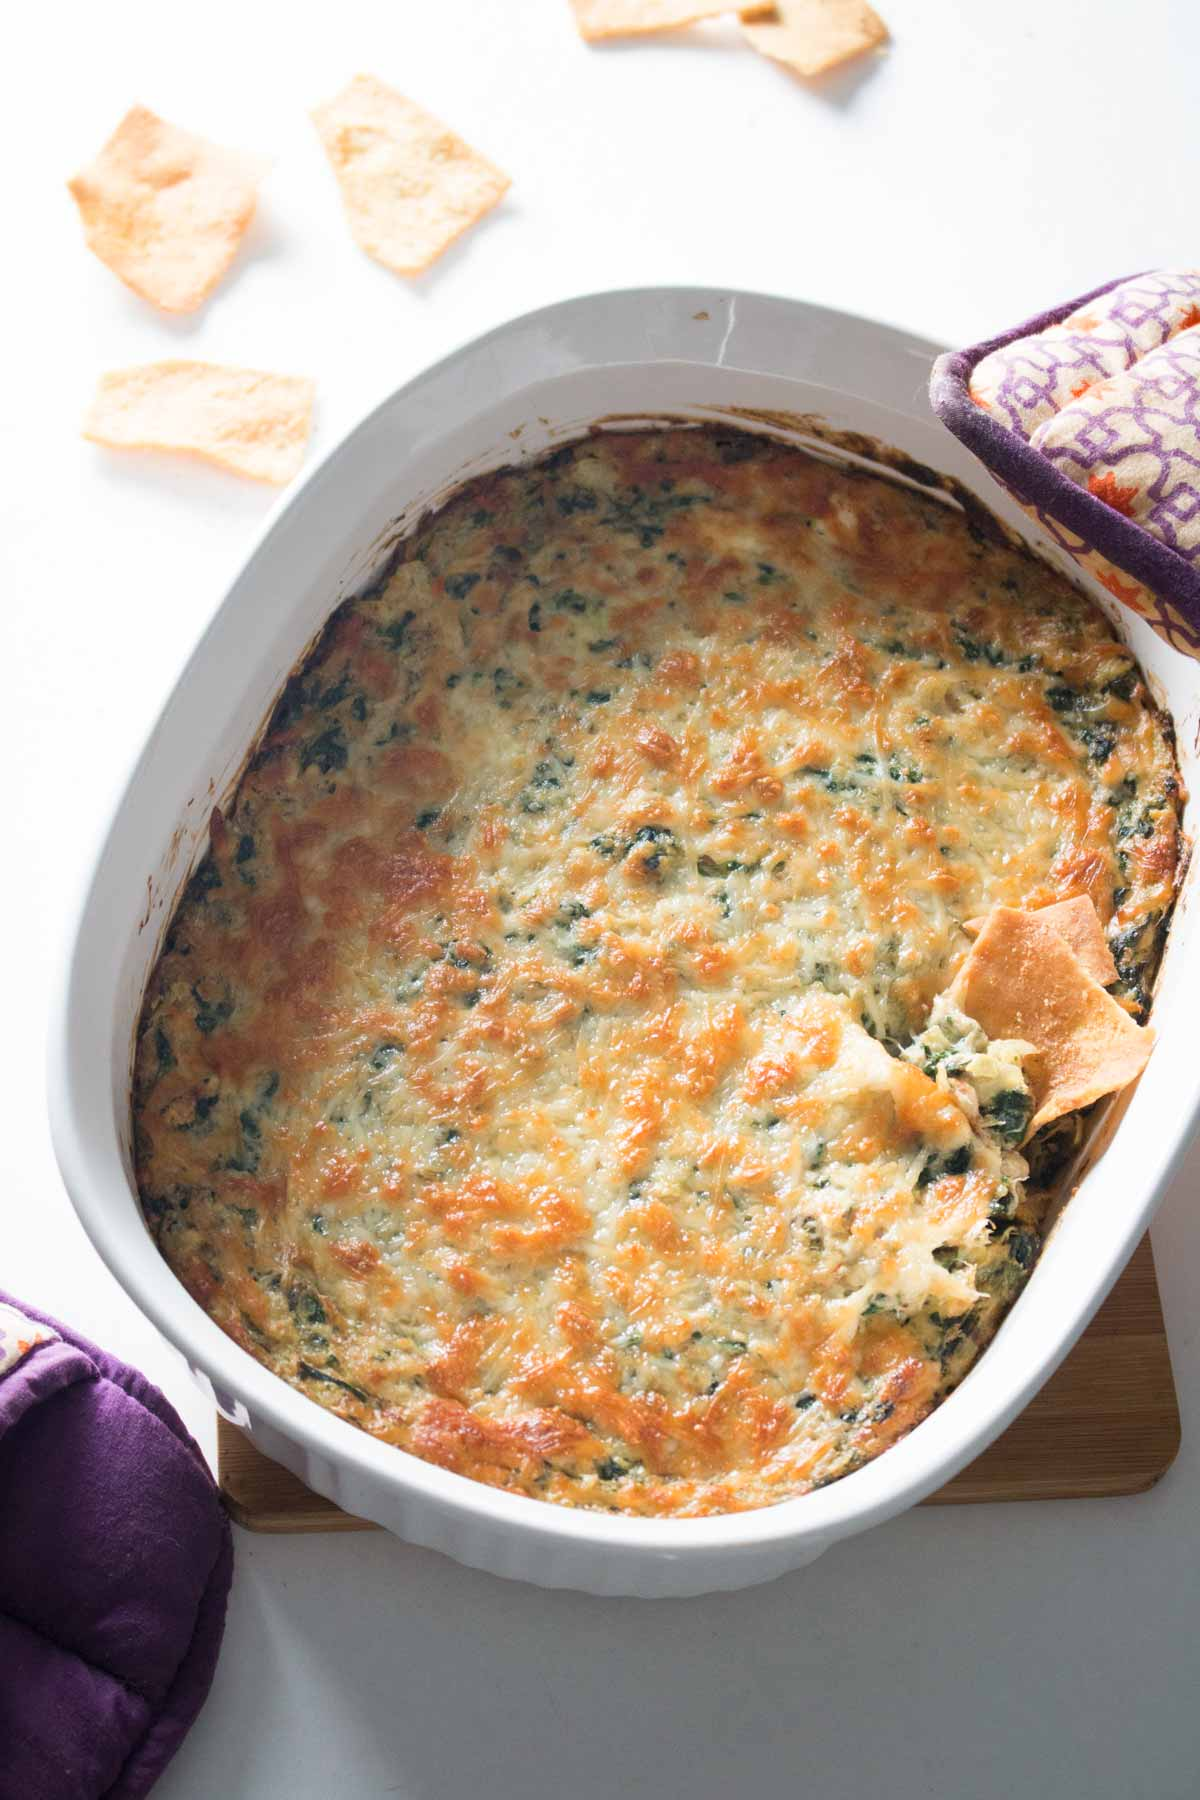 Overhead view of baked spinach, artichoke, and crab dip in white casserole dish